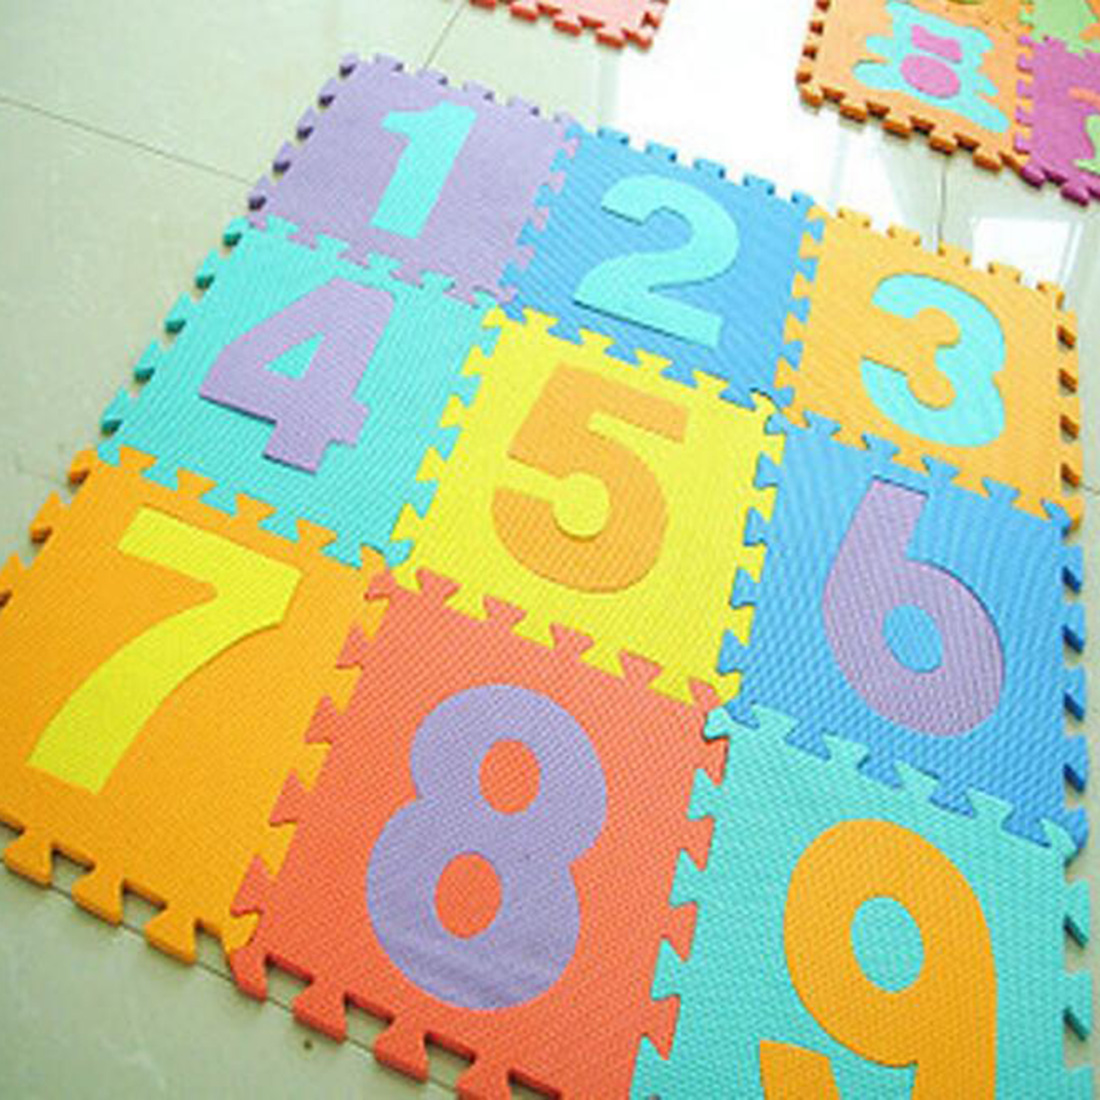 carpet letters. 10pcs/set 30*30cm eva mat puzzle carpet baby play foam flooring mats number letters animal for bedroom e